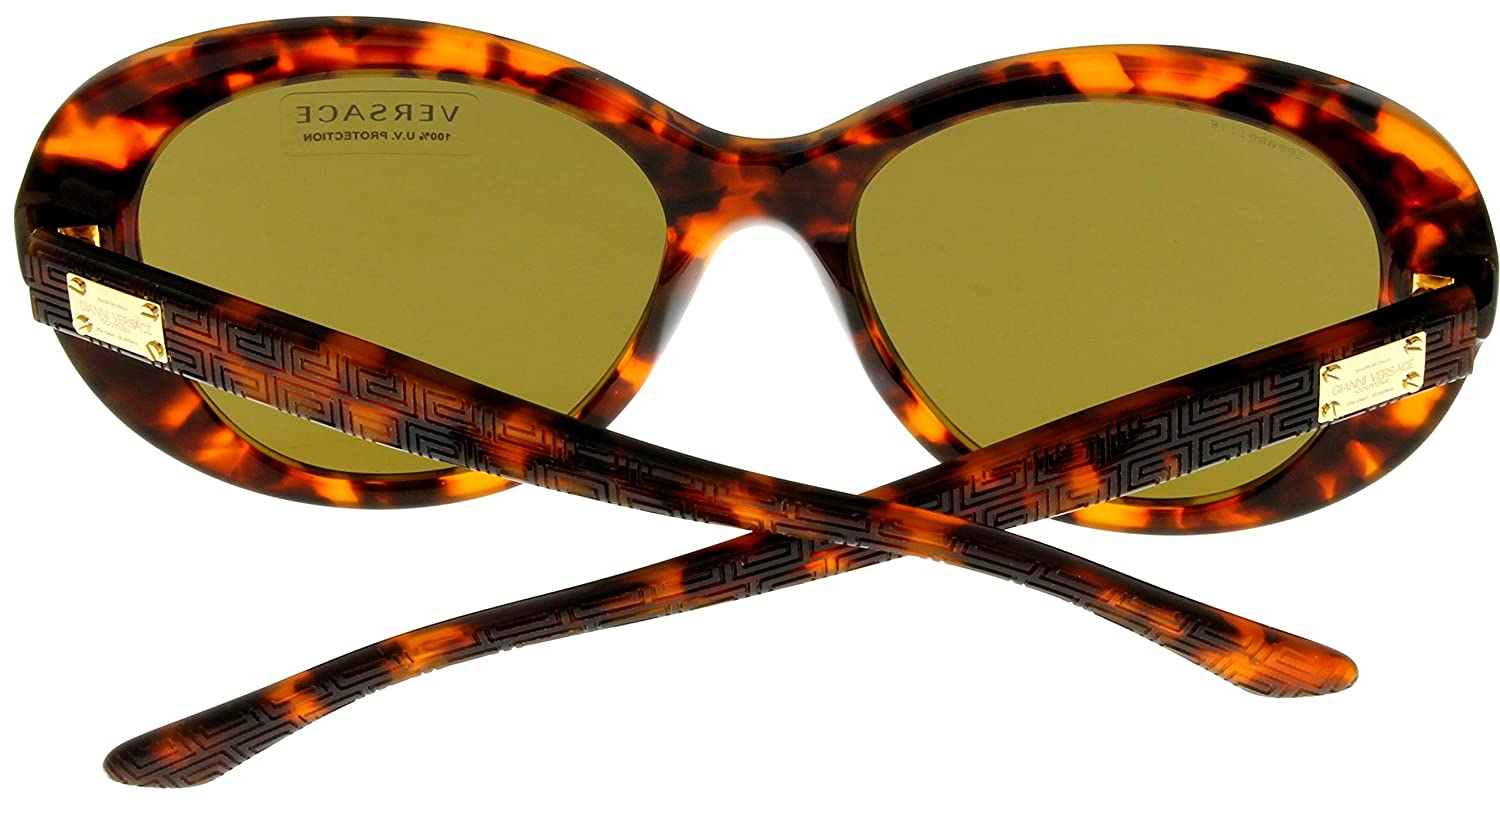 950104c49b398 Amazon.com  Versace Sunglasses Women Havana Cat Eye 100% UV Protection  VE4273 507473  Clothing